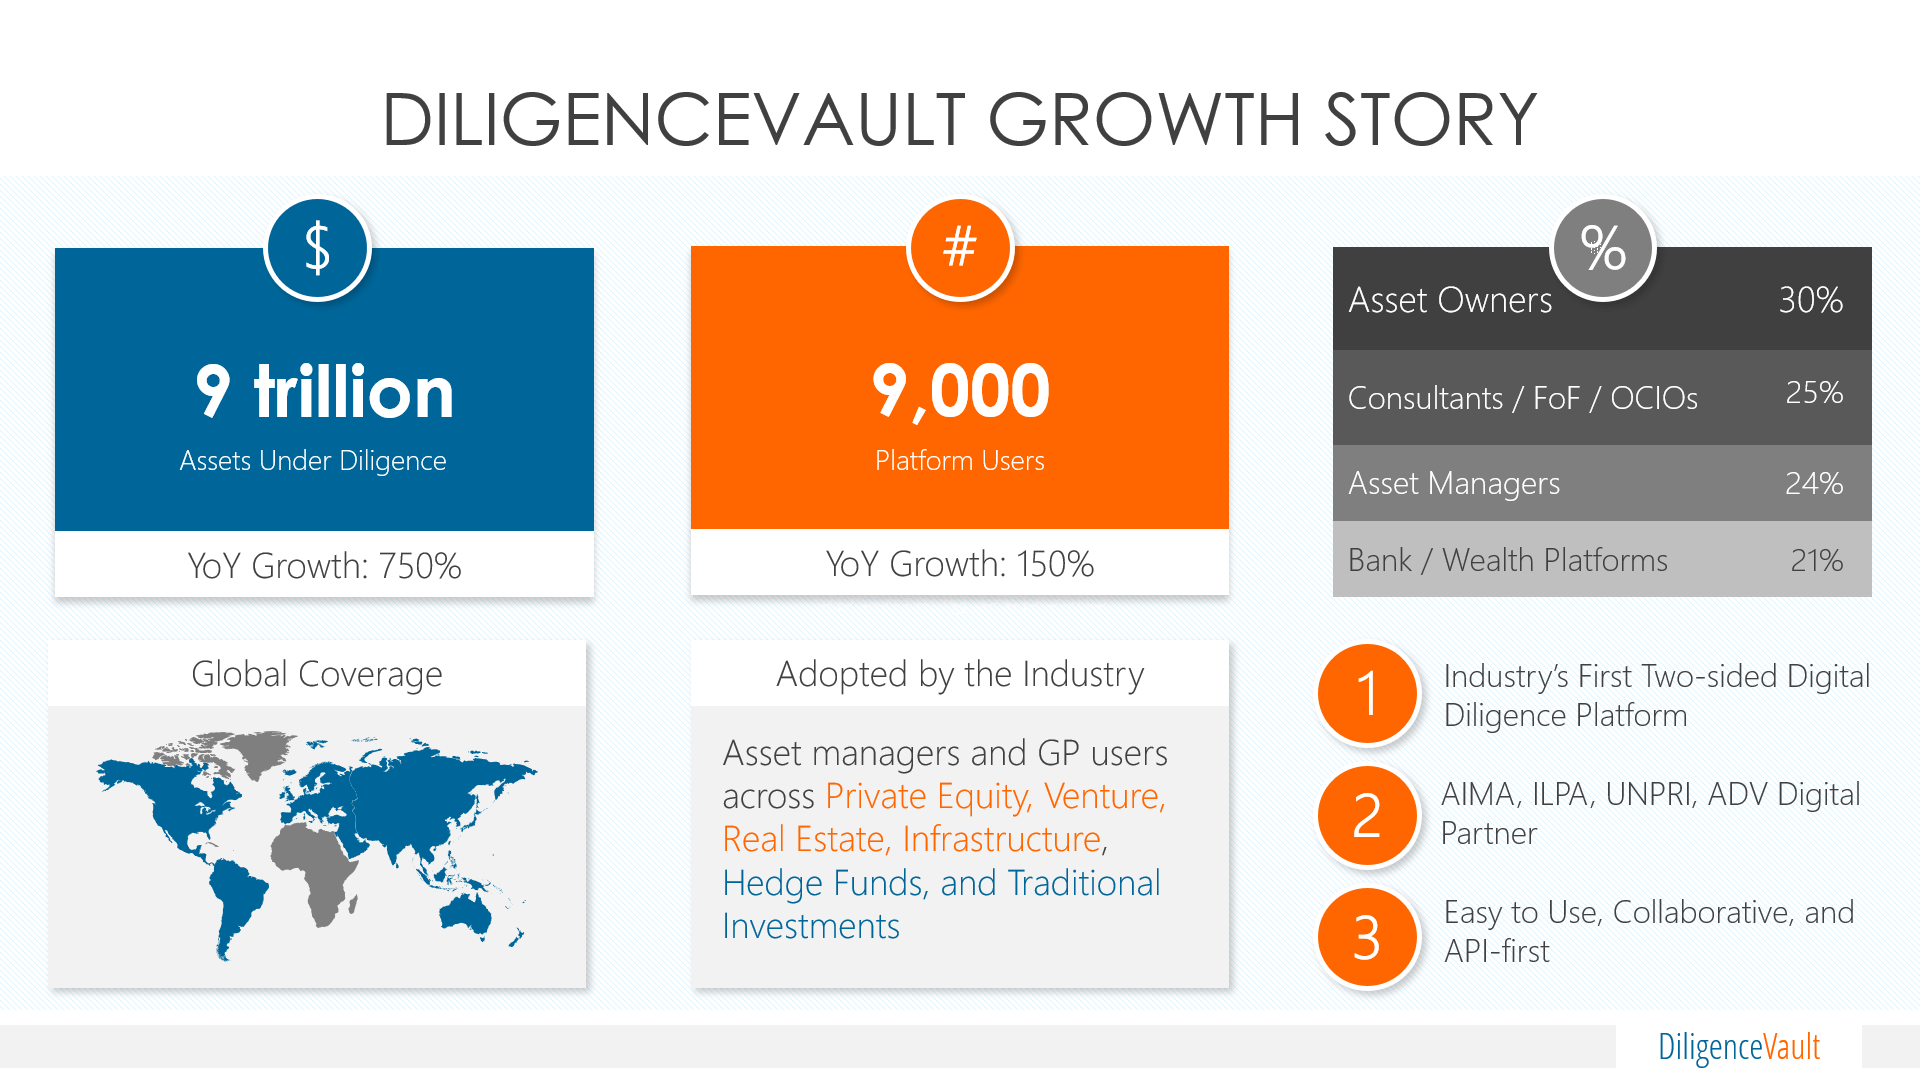 DiligenceVault Receives Series A Funding Led by Goldman Sachs to Accelerate Growth